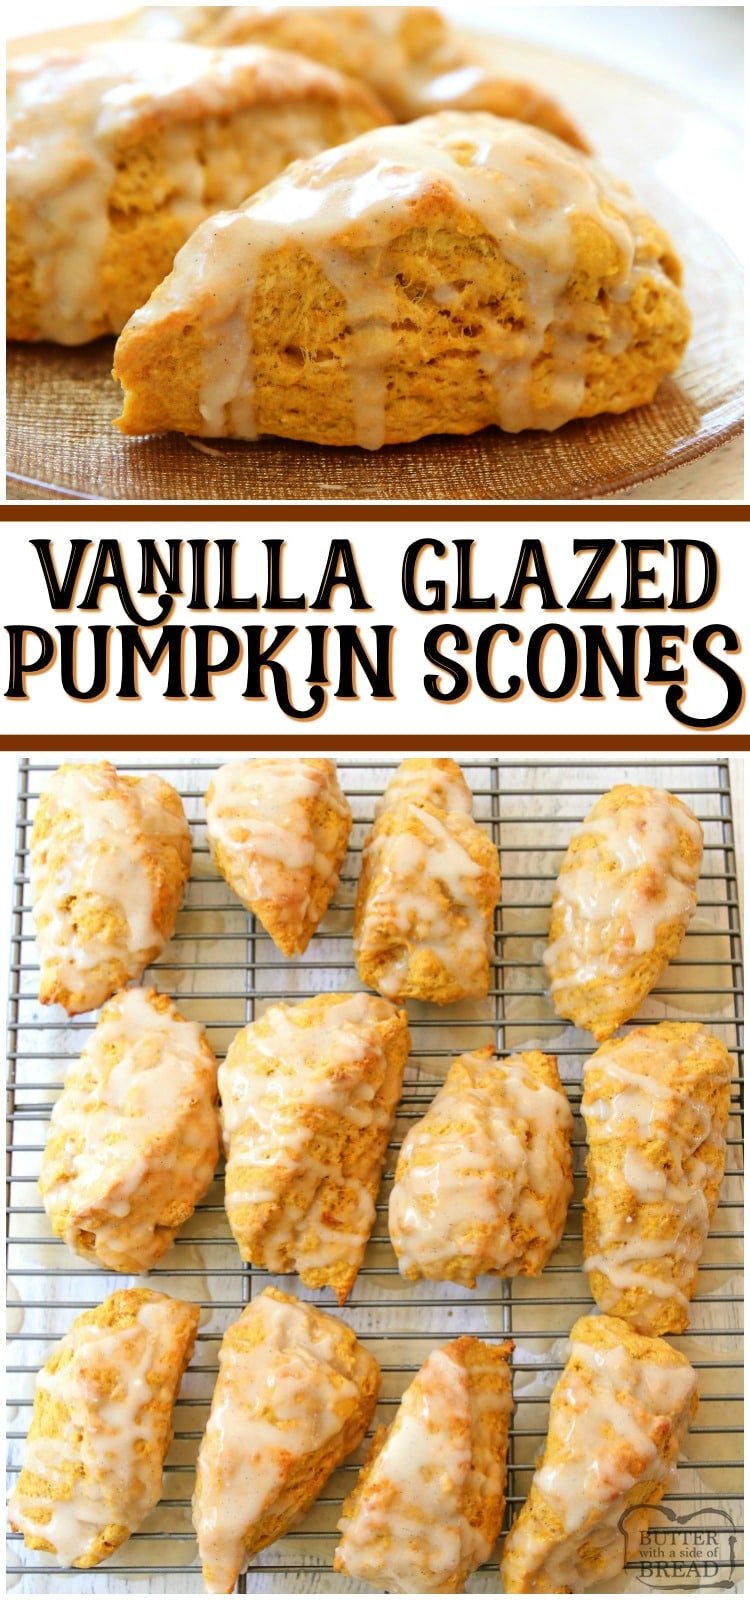 Easy Pumpkin Scones recipe made with pumpkin, cinnamon, brown sugar and butter. Soft & sweet pumpkin scones that are perfect for Fall. #scones #pumpkin #recipe #baking #breakfast #scone #recipe from BUTTER WITH A SIDE OF BREAD